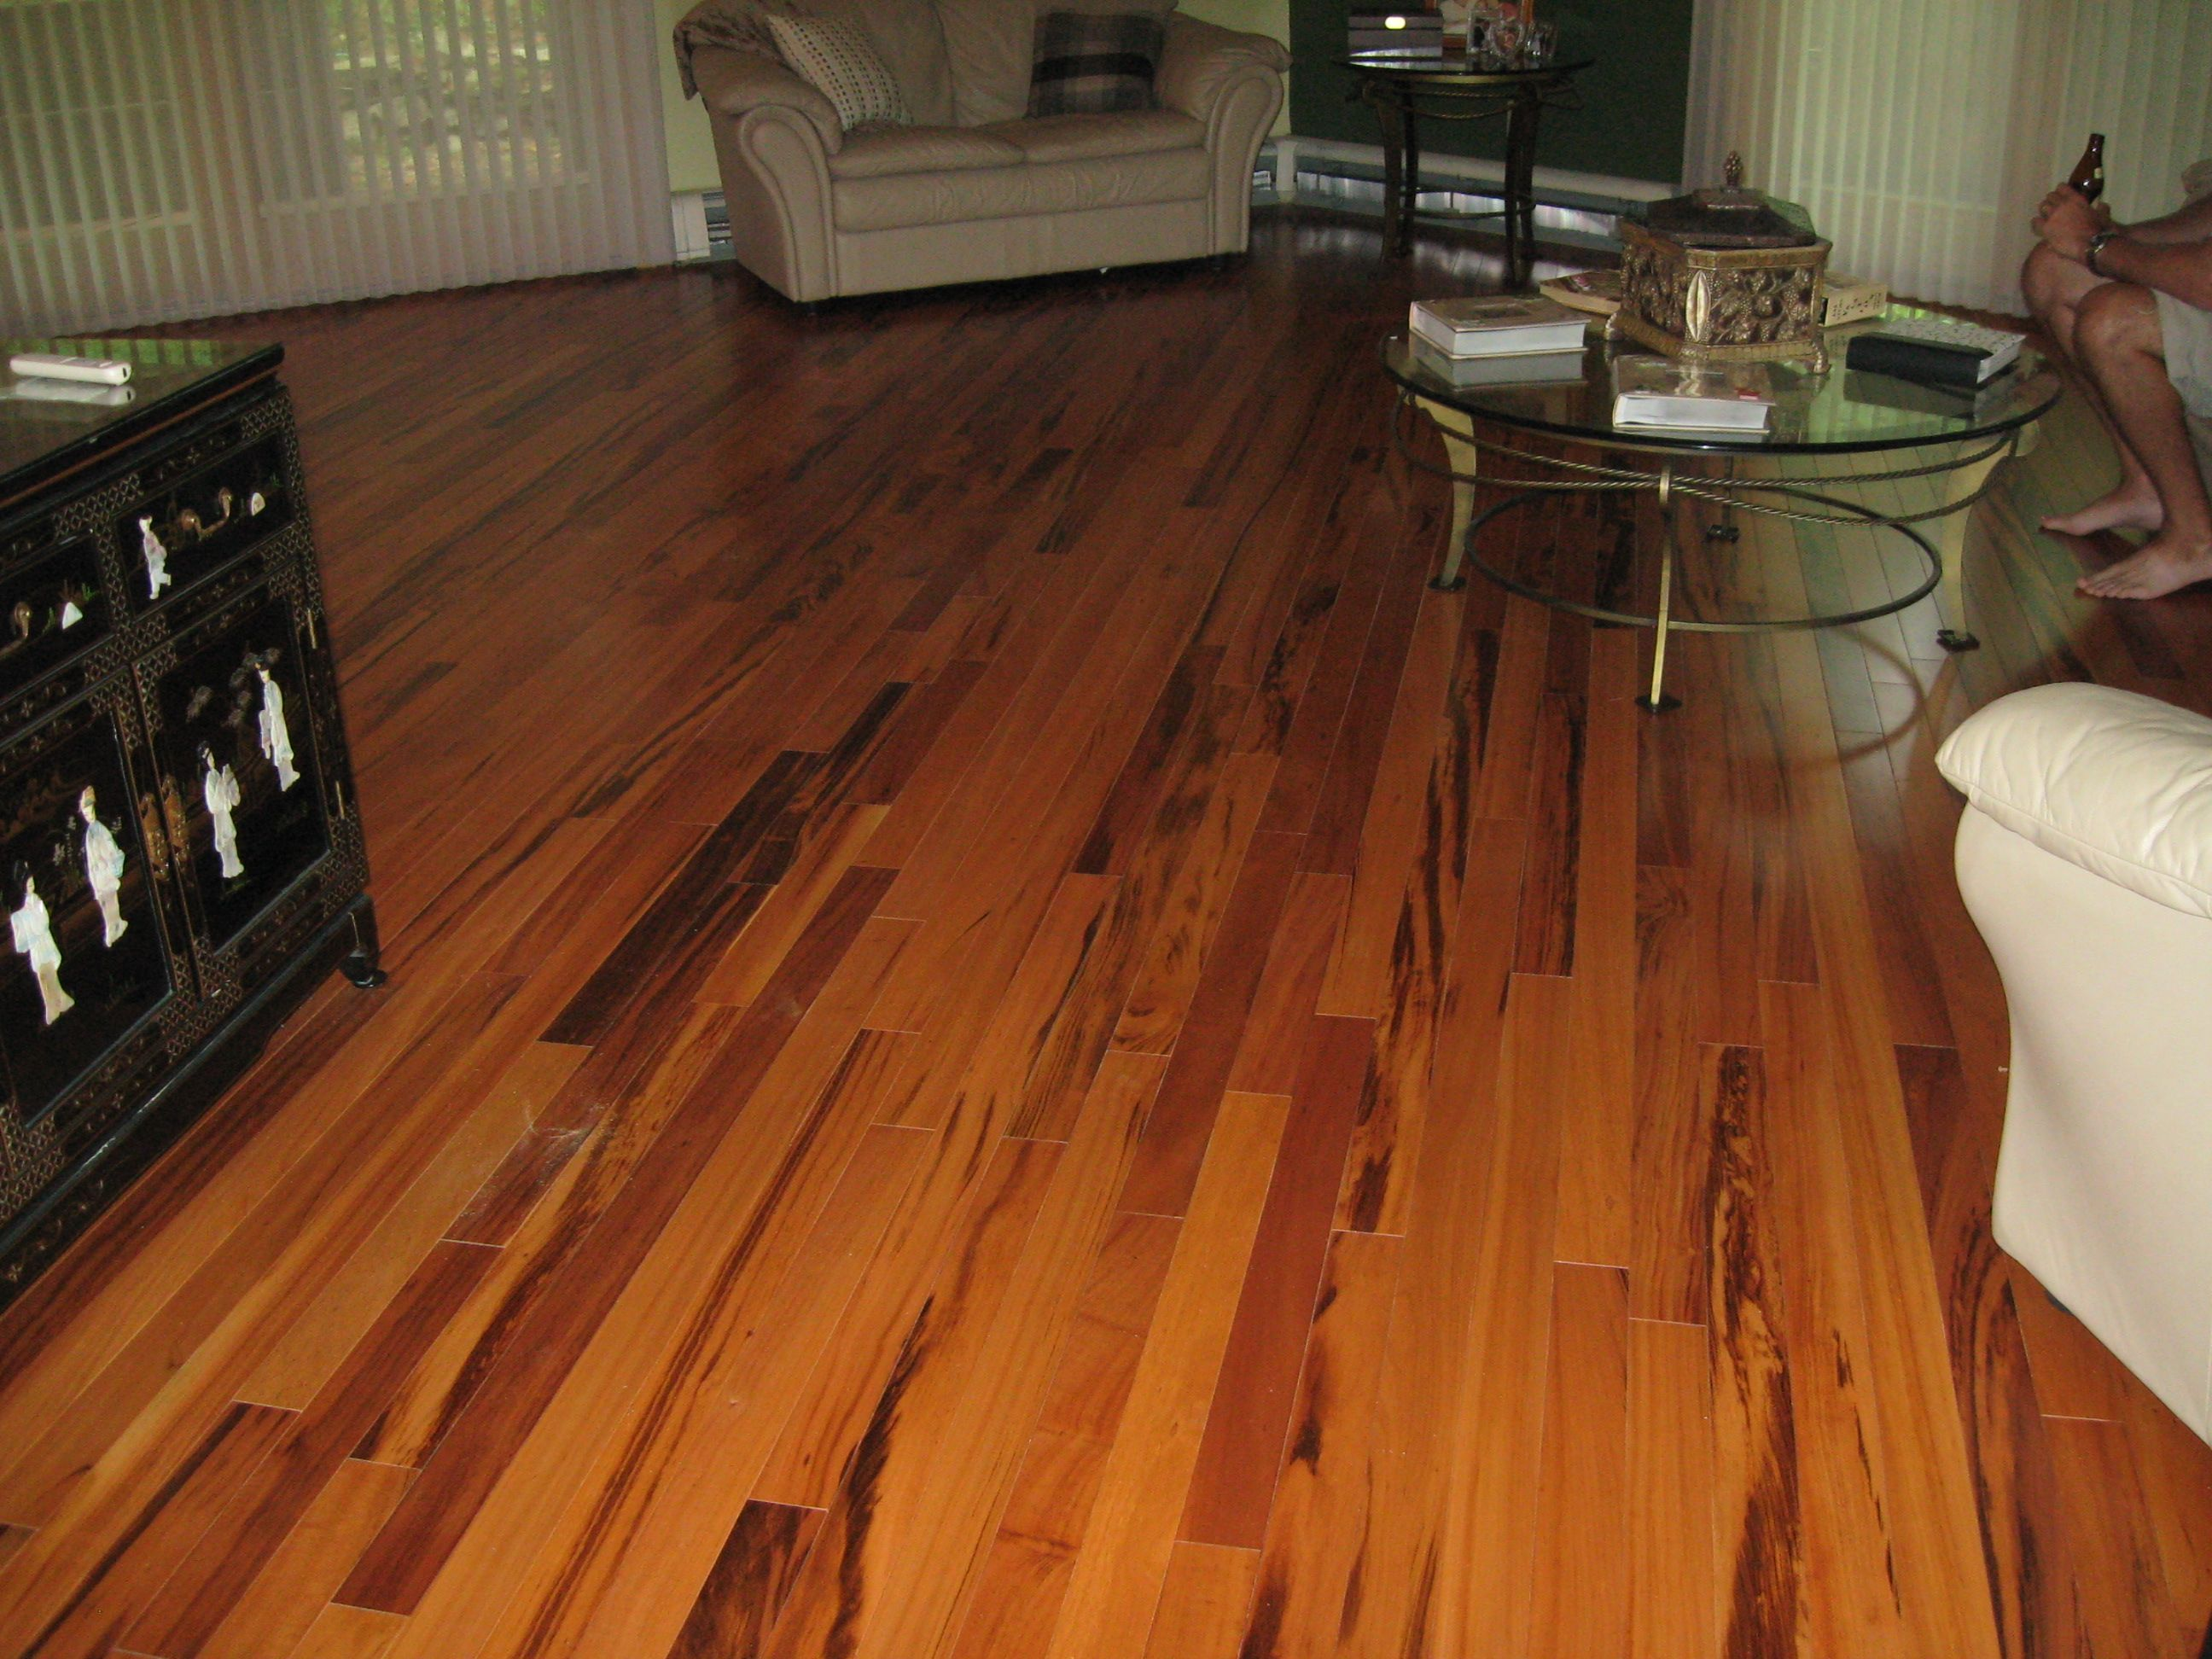 Floor decor installation of exotic tigerwood 3 4 x 3 for Tigerwood hardwood flooring